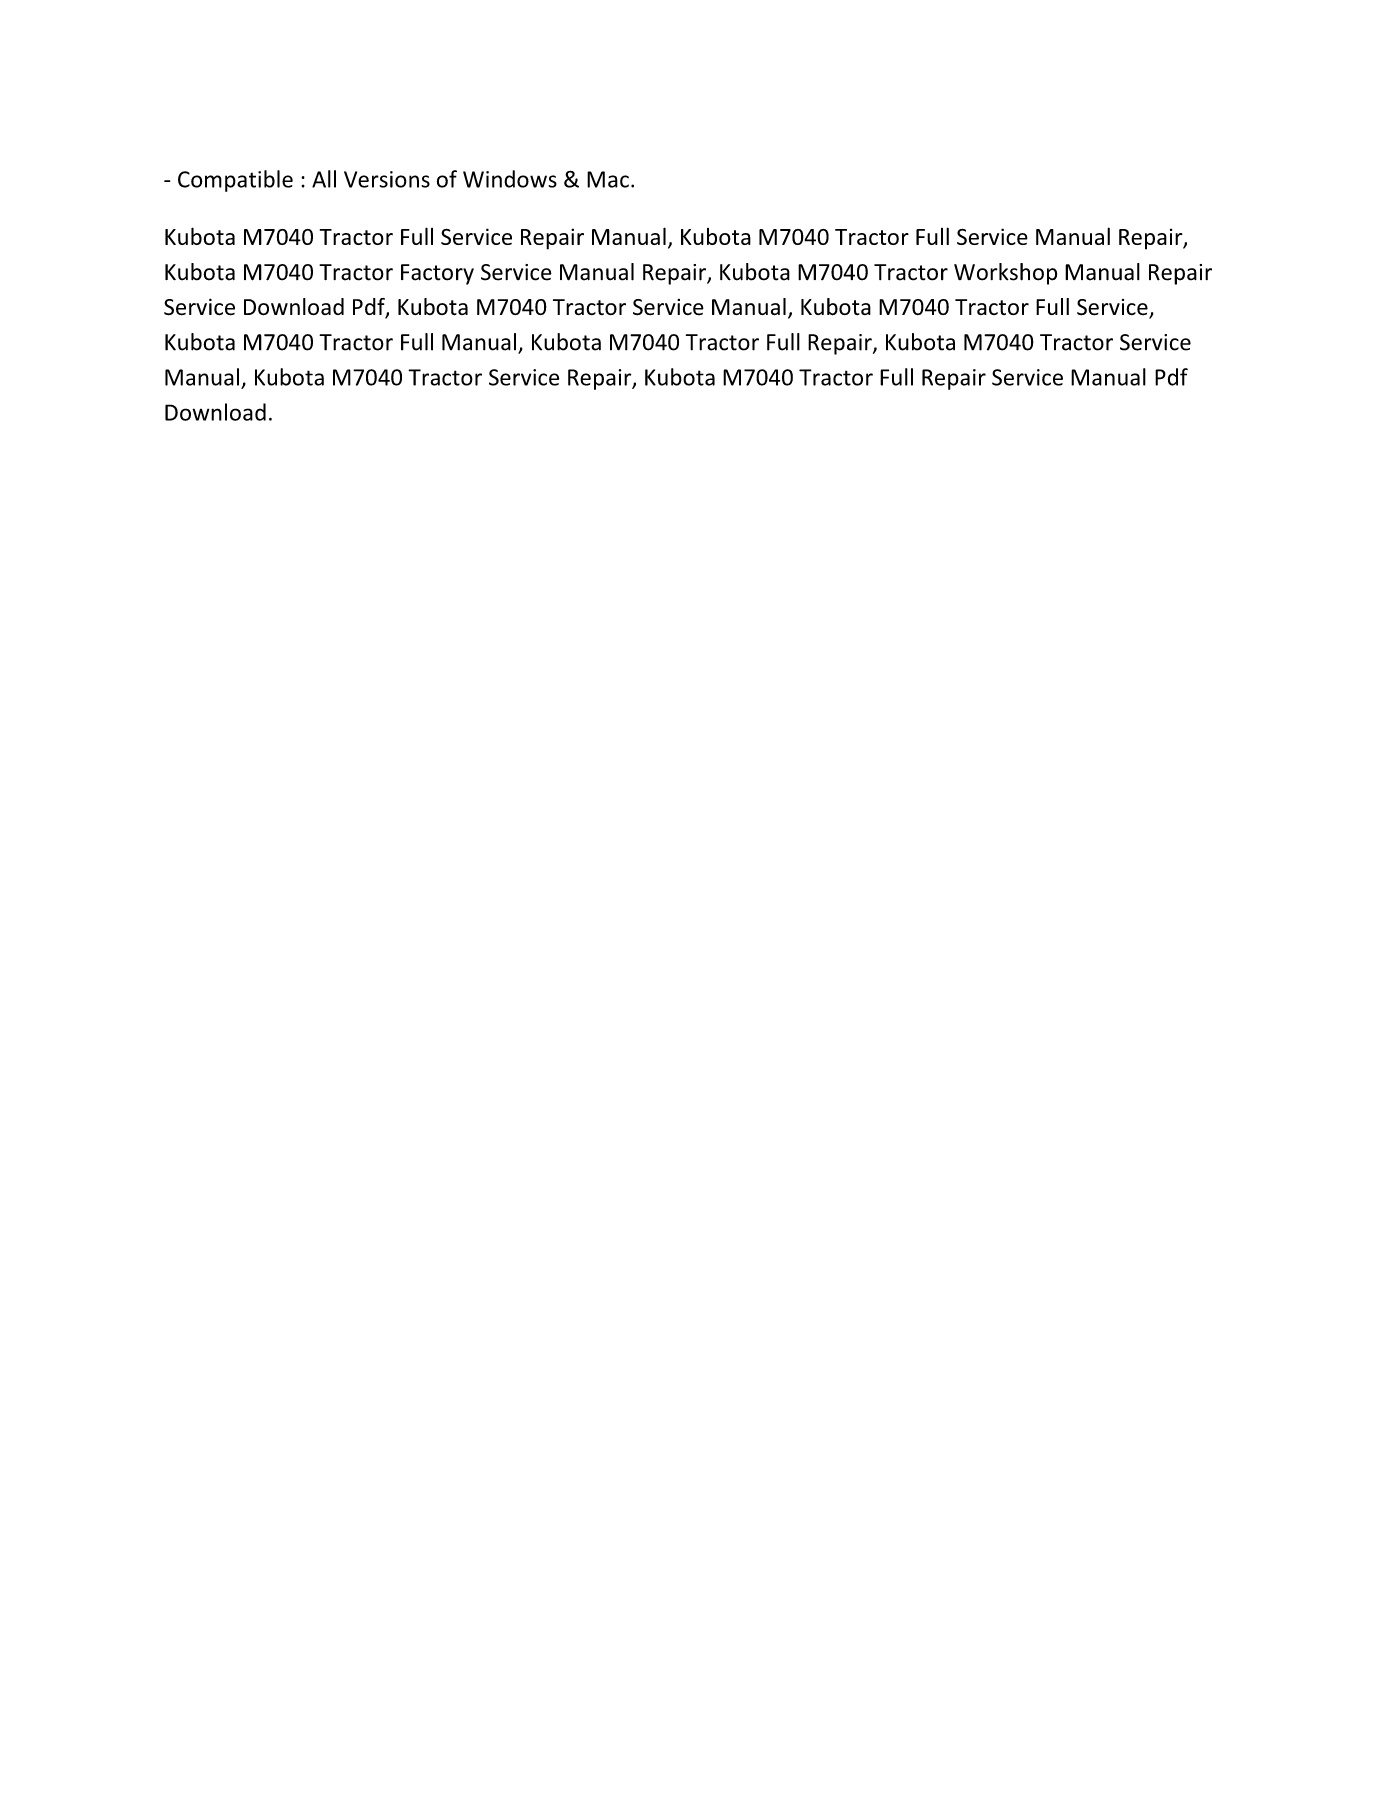 Kubota M7040 Tractor FULL SERVICE MANUAL REPAIR Pages 1 - 2 - Text on